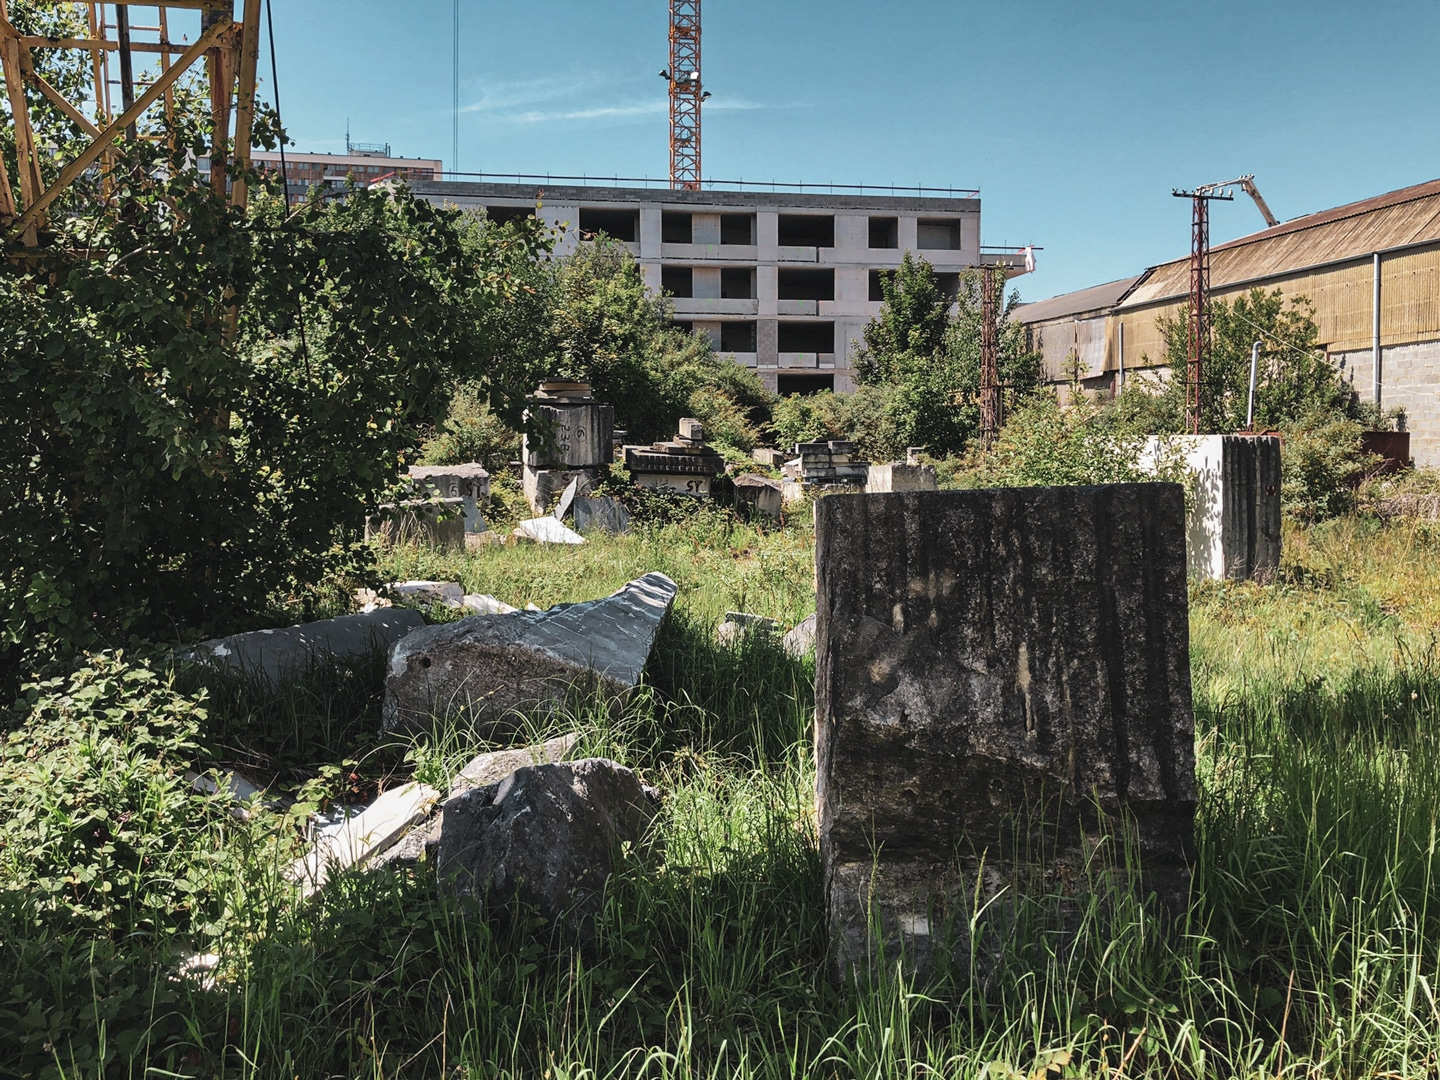 An abandoned industrial site